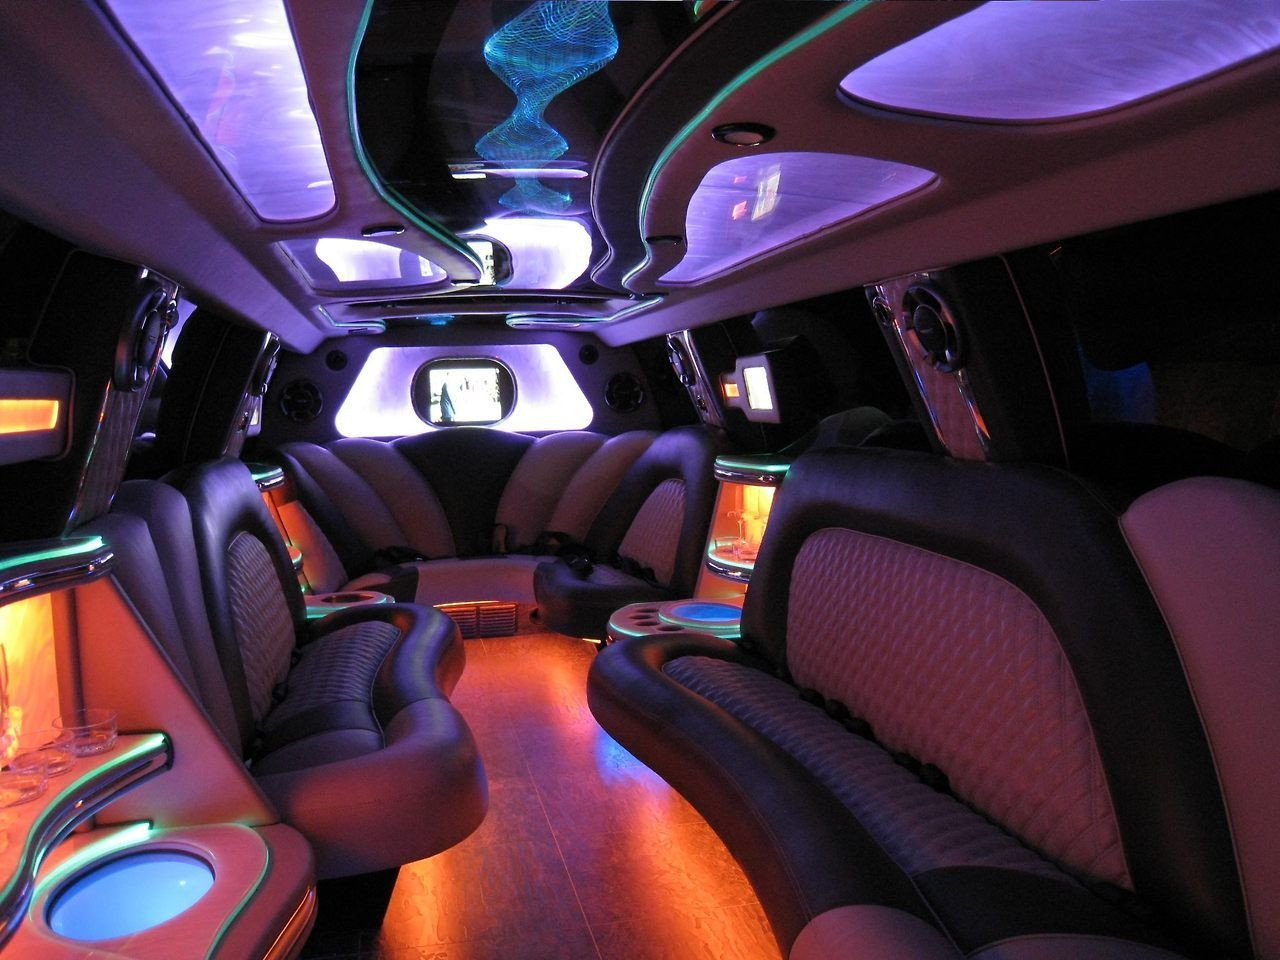 Pin by cadaver_chan on places Limousine interior, Limo